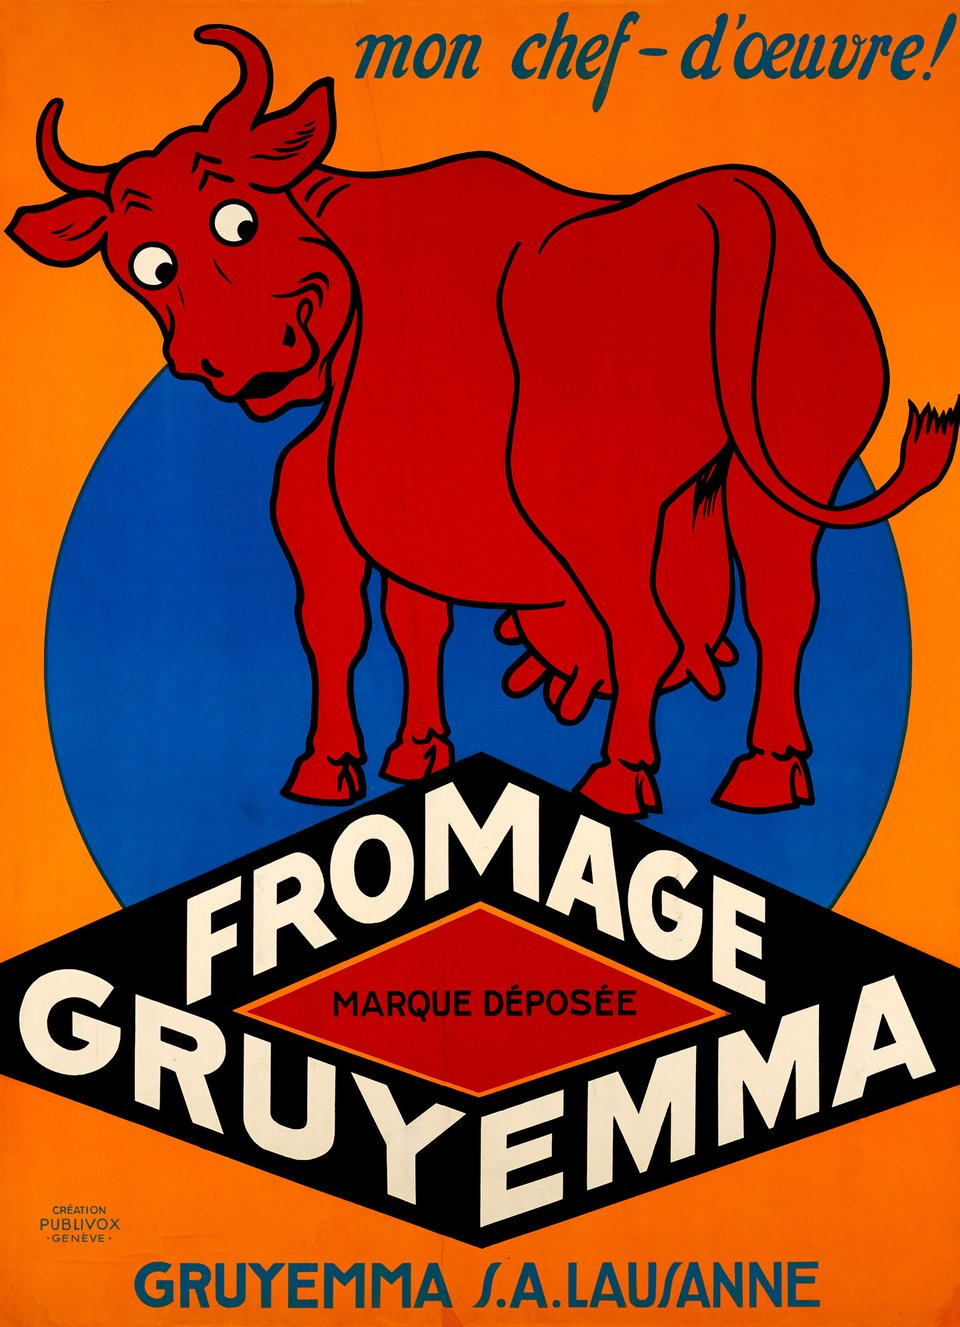 Fromage Gruyemaa, mon chef d'oeuvre – Affiche ancienne –  ANONYME – 1930